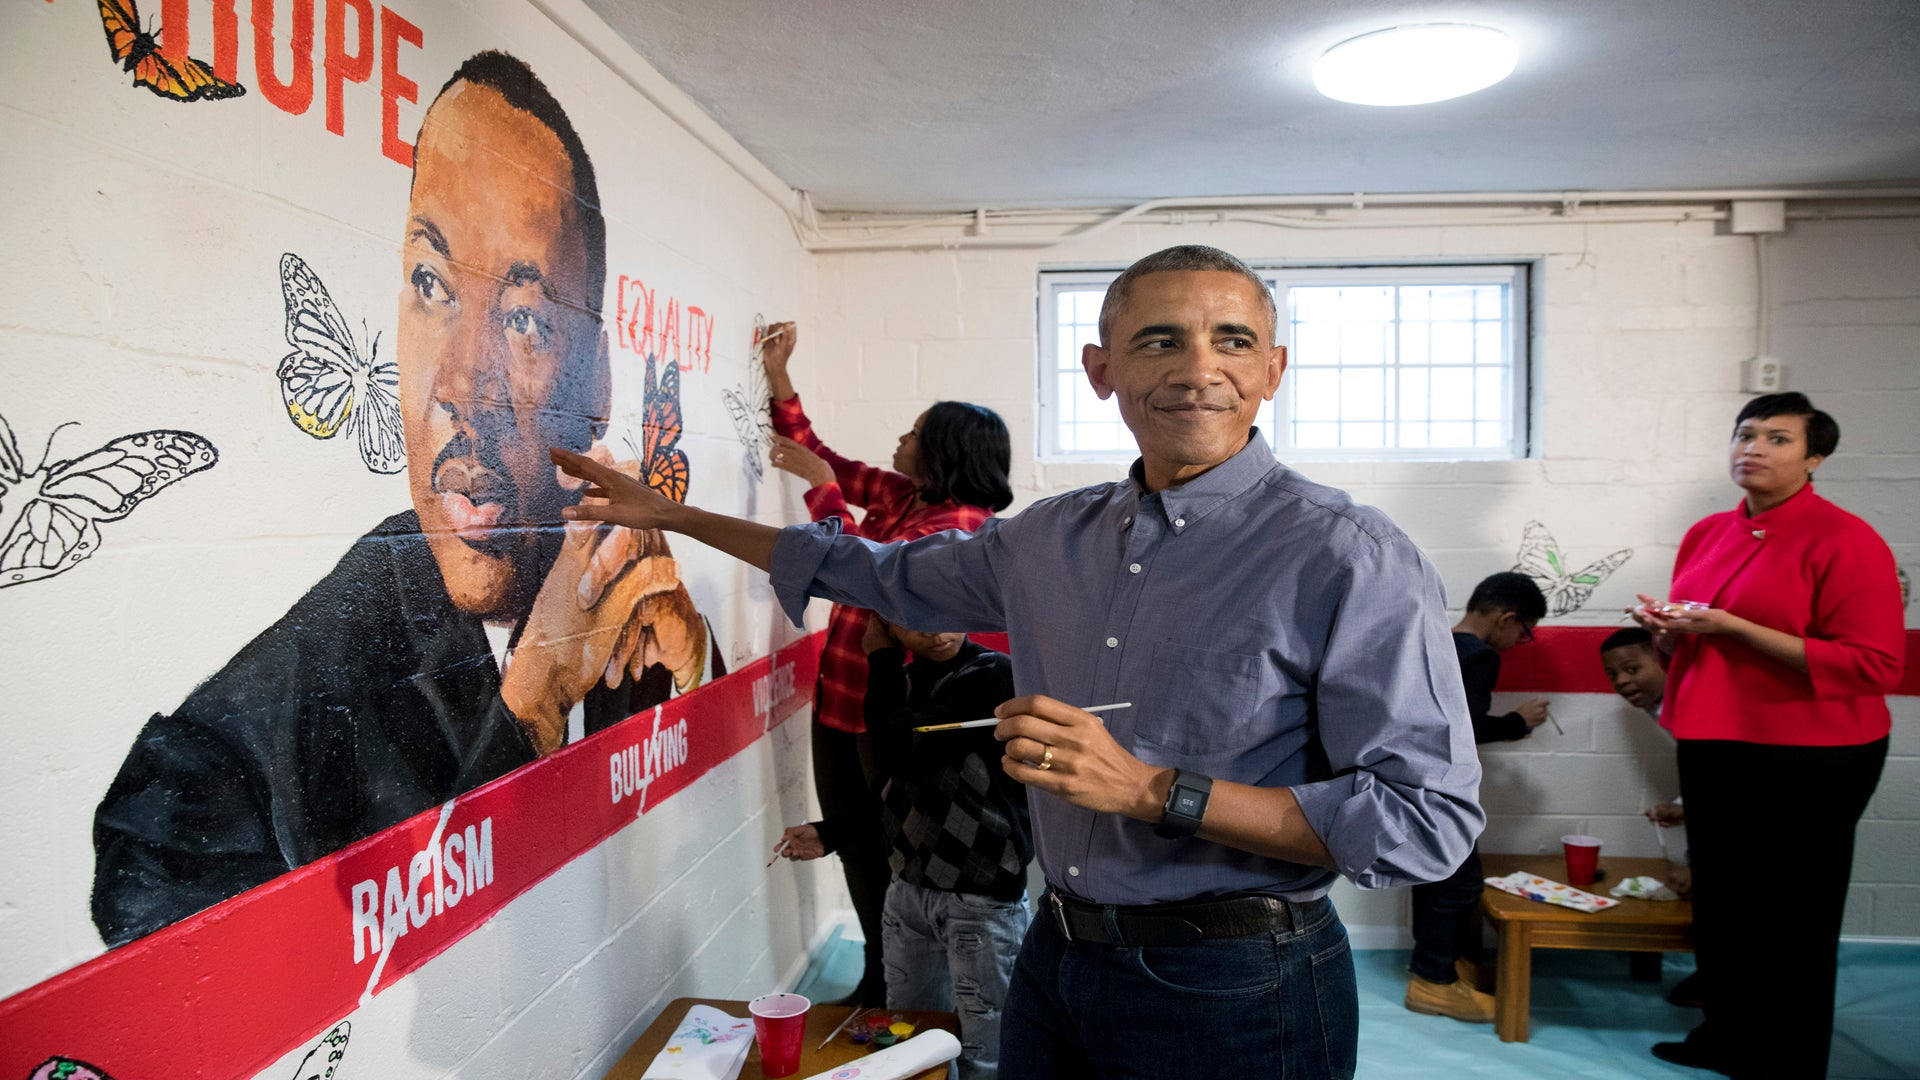 Obama And Celebrities Pose For MLK Day Photo On Instagram